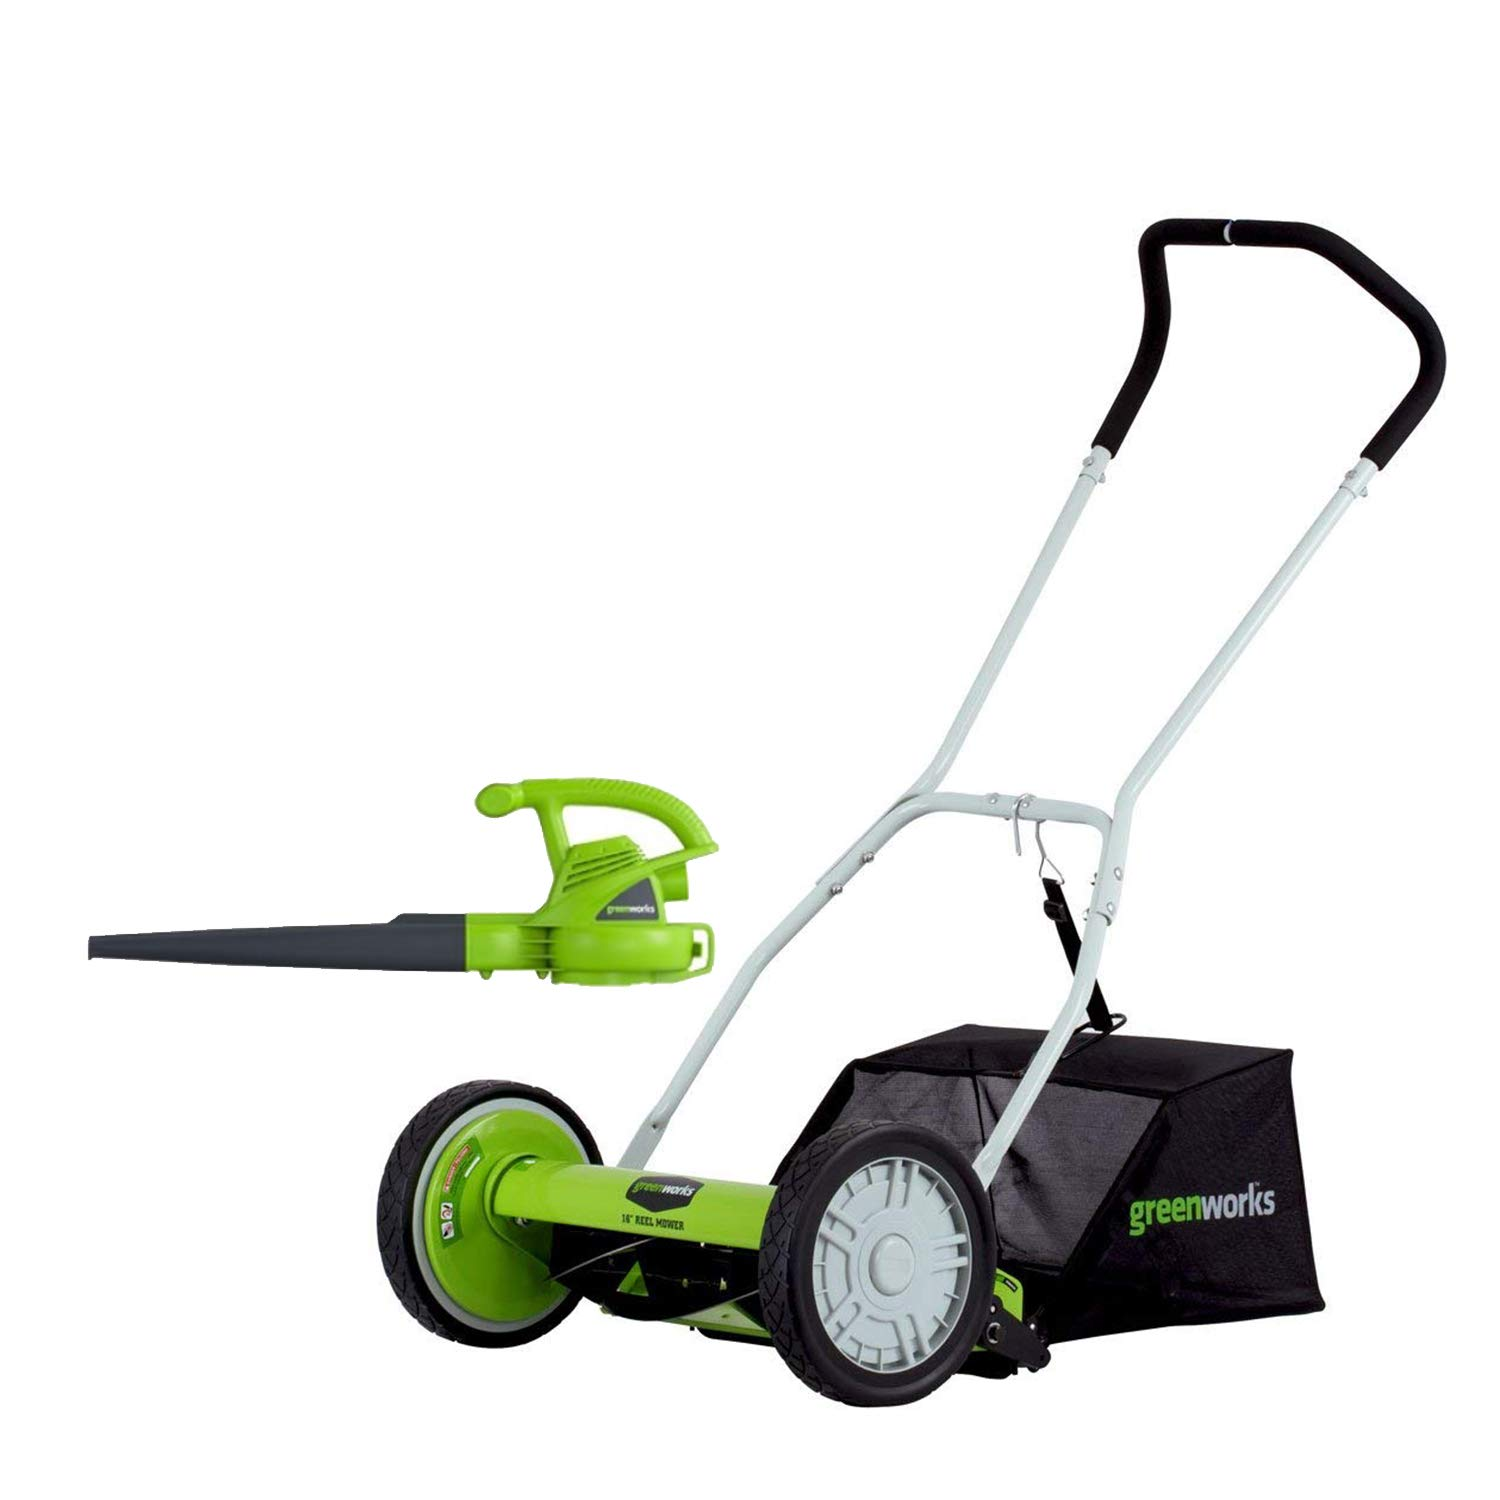 "GreenWorks 25052 16"" Reel Lawn Mower with Grass Catcher + 7 Amp Blower"